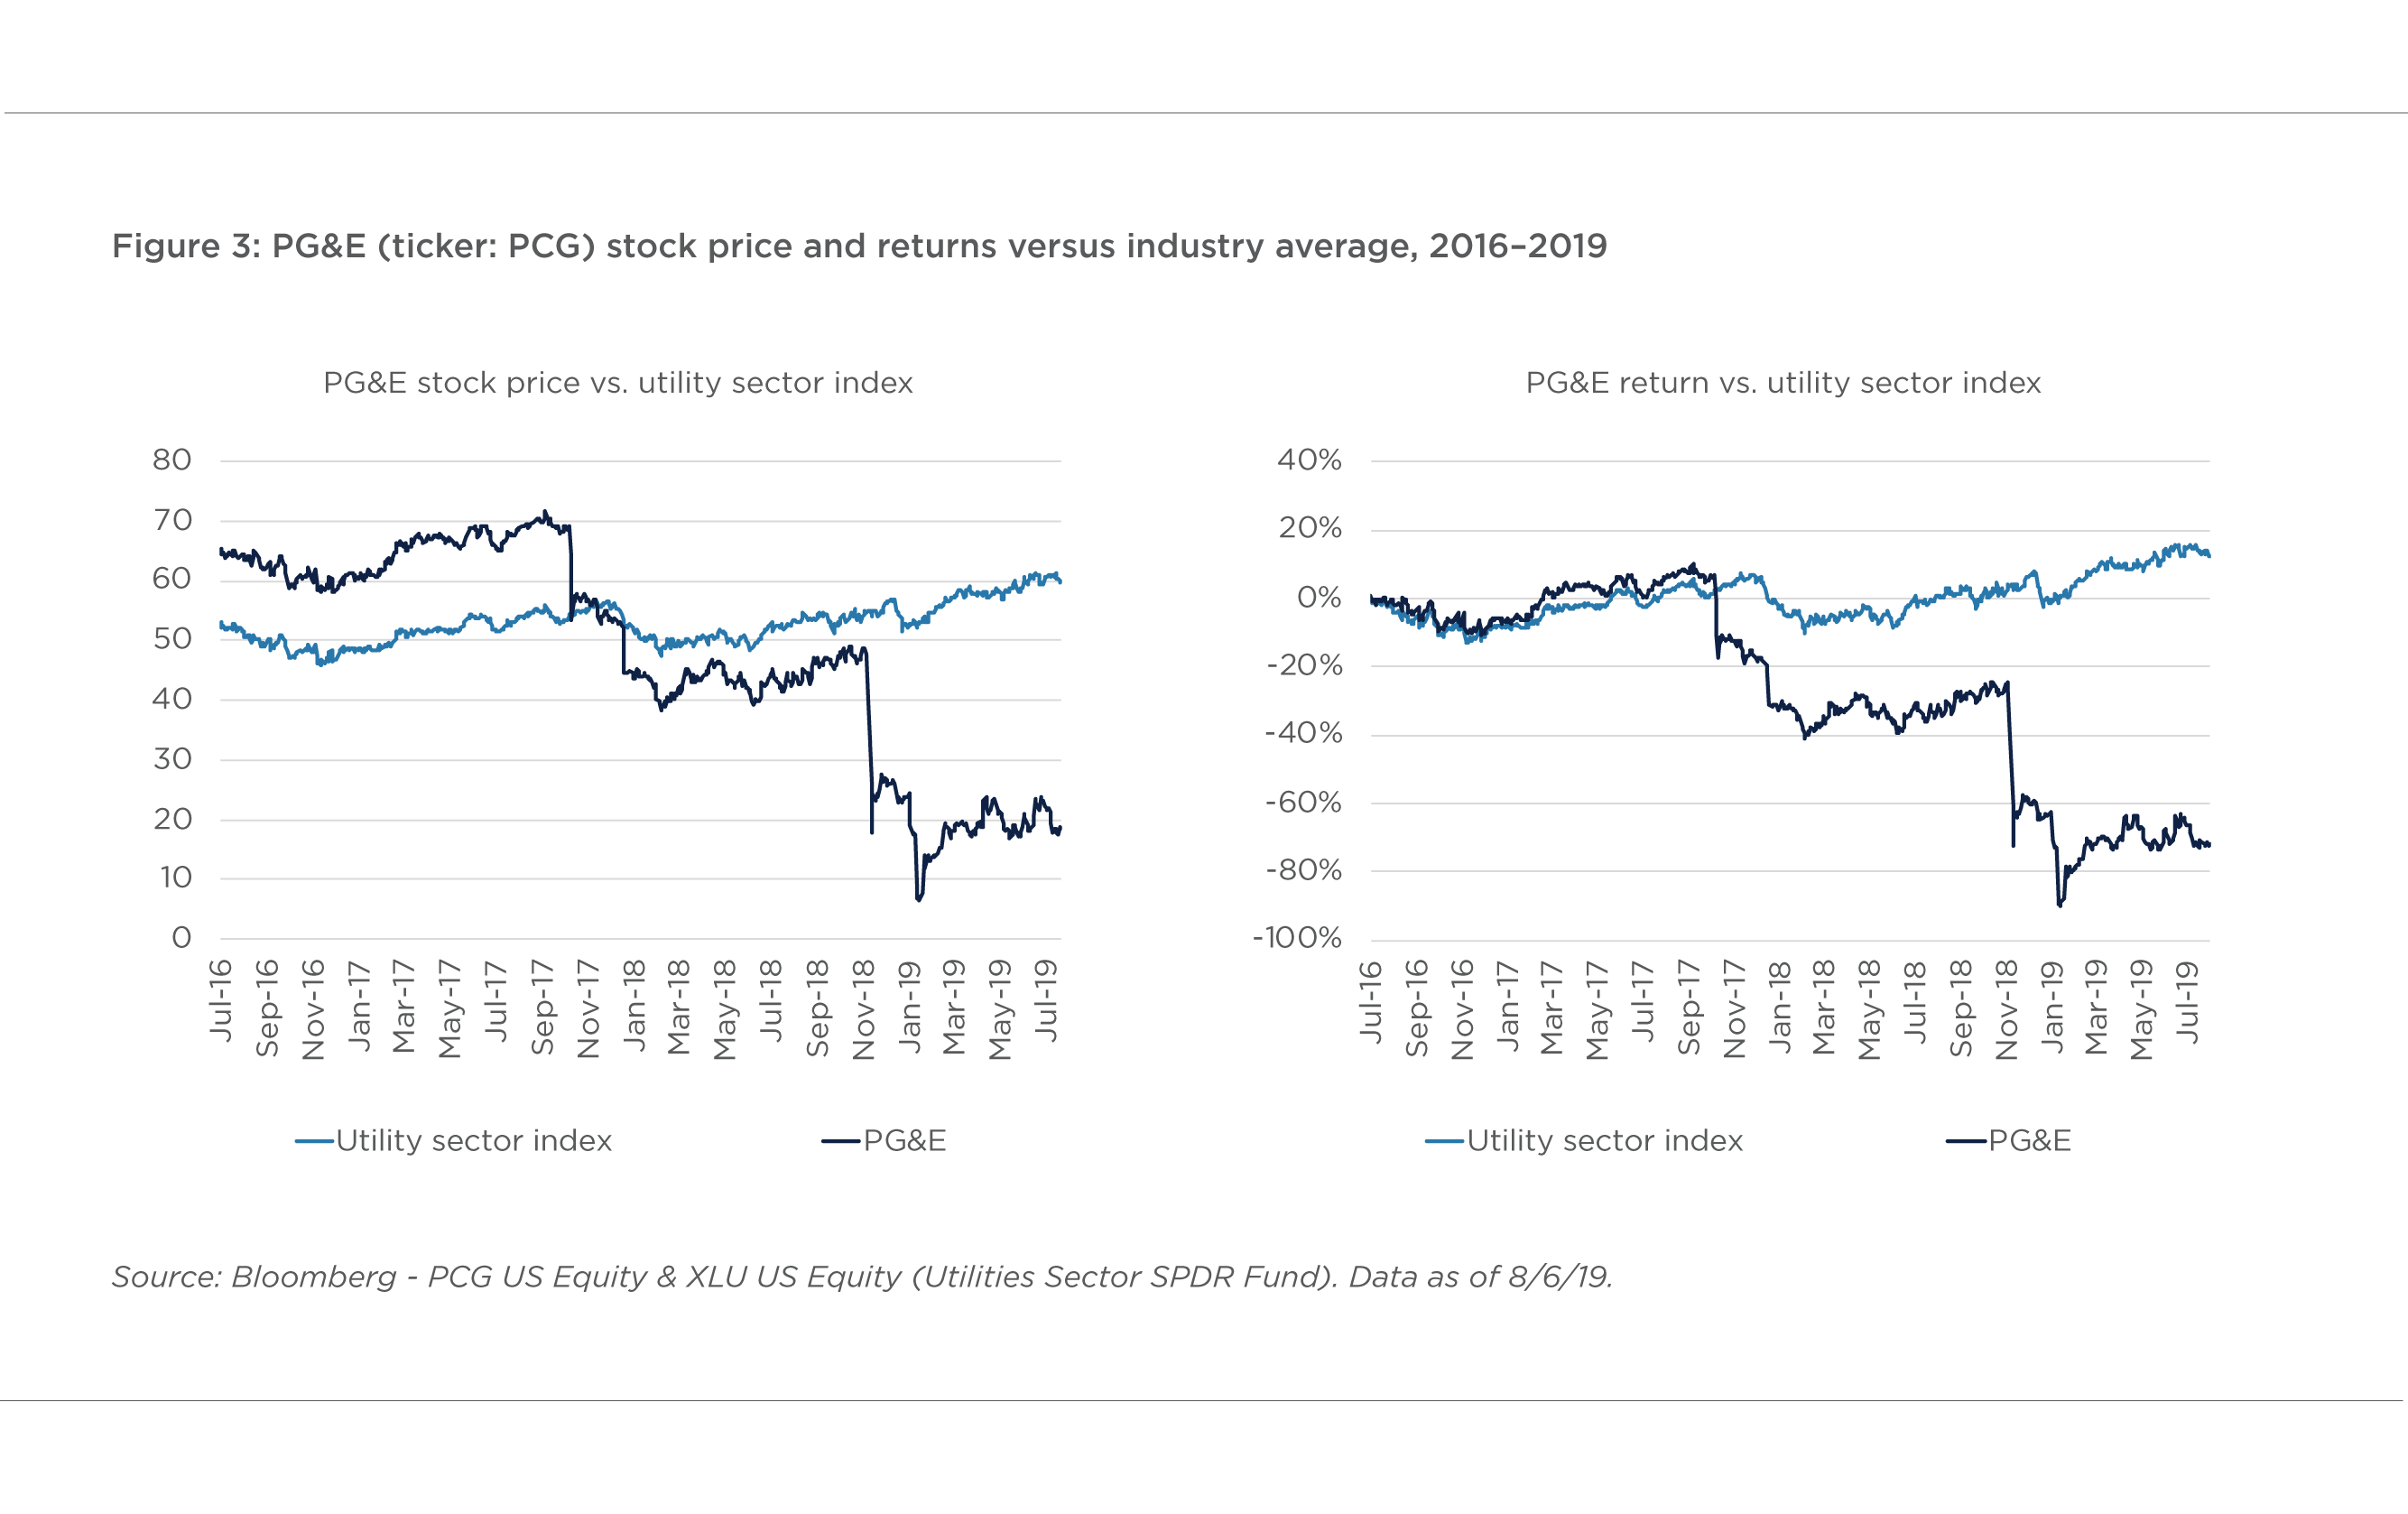 FIGURE 3. PG&E (TICKER: PCG) STOCK PRICE AND RETURNS VERSUS INDUSTRY AVERAGE, 2016–2019